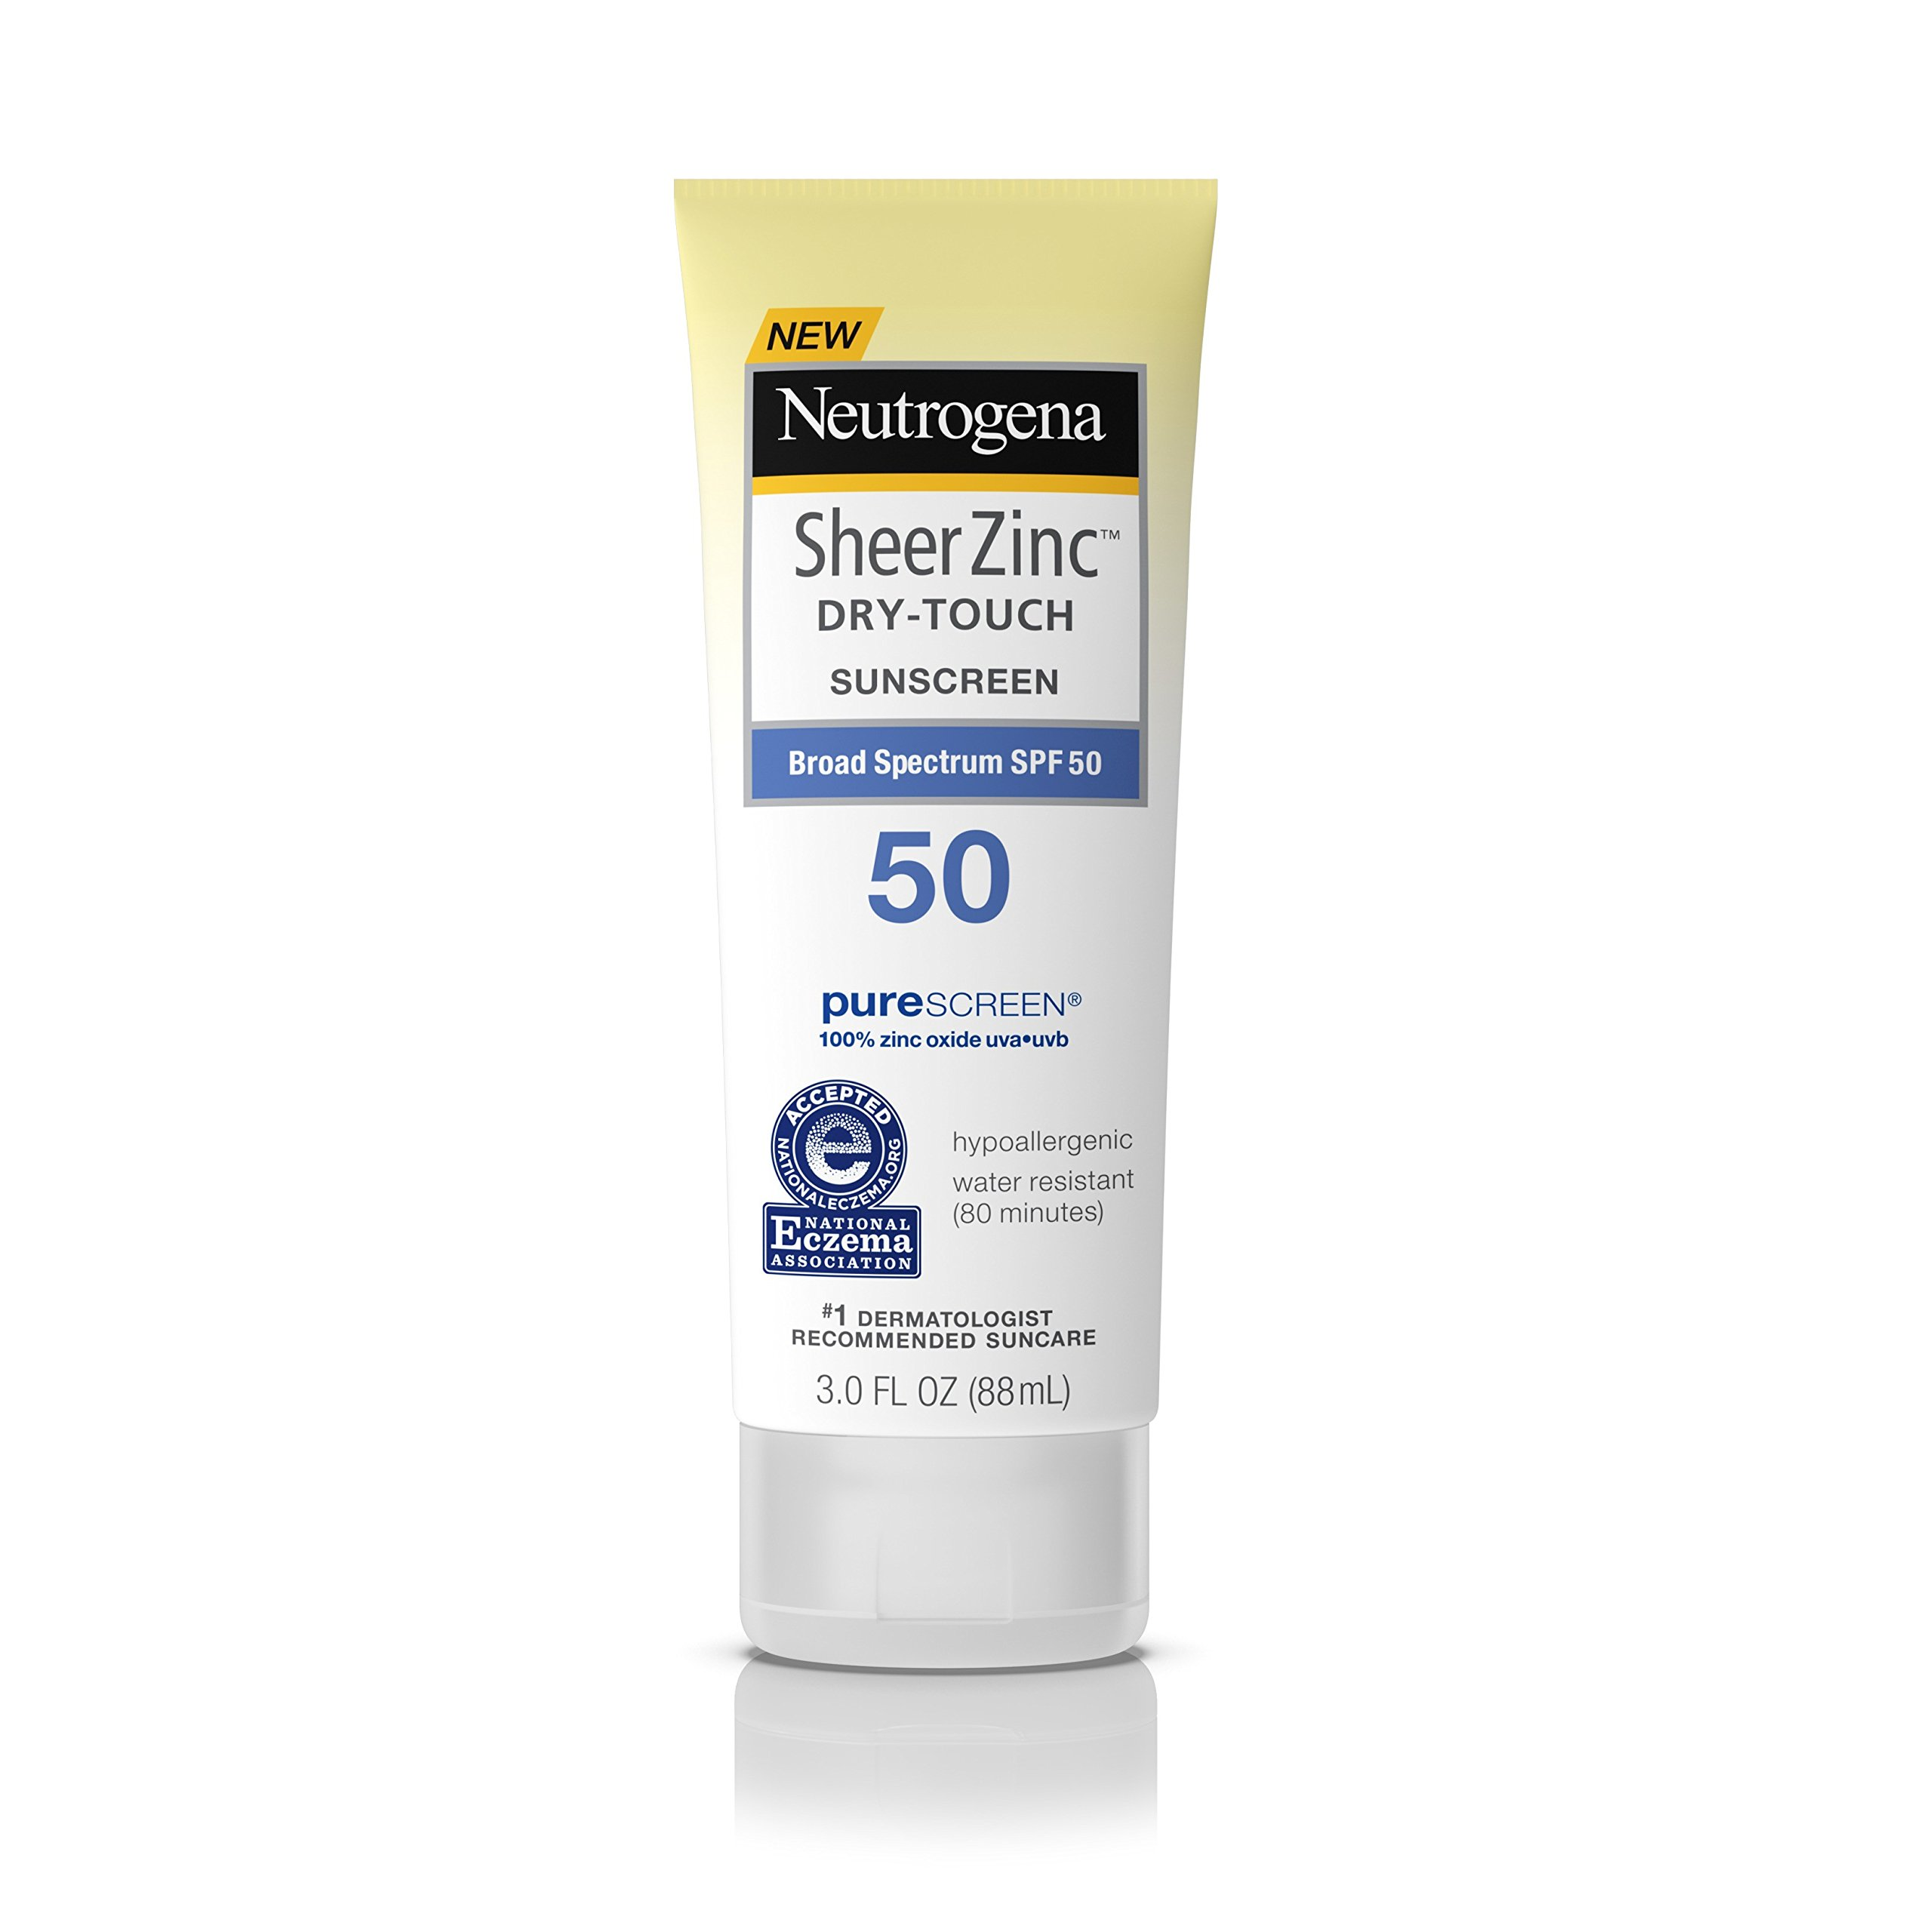 Neutrogena Sheer Zinc Oxide Dry-Touch Sunscreen Lotion with Broad Spectrum SPF 50, Water-Resistant, Hypoallergenic & Non-Greasy Mineral Sunscreen, 3 fl. Oz (Pack of 3) by Neutrogena